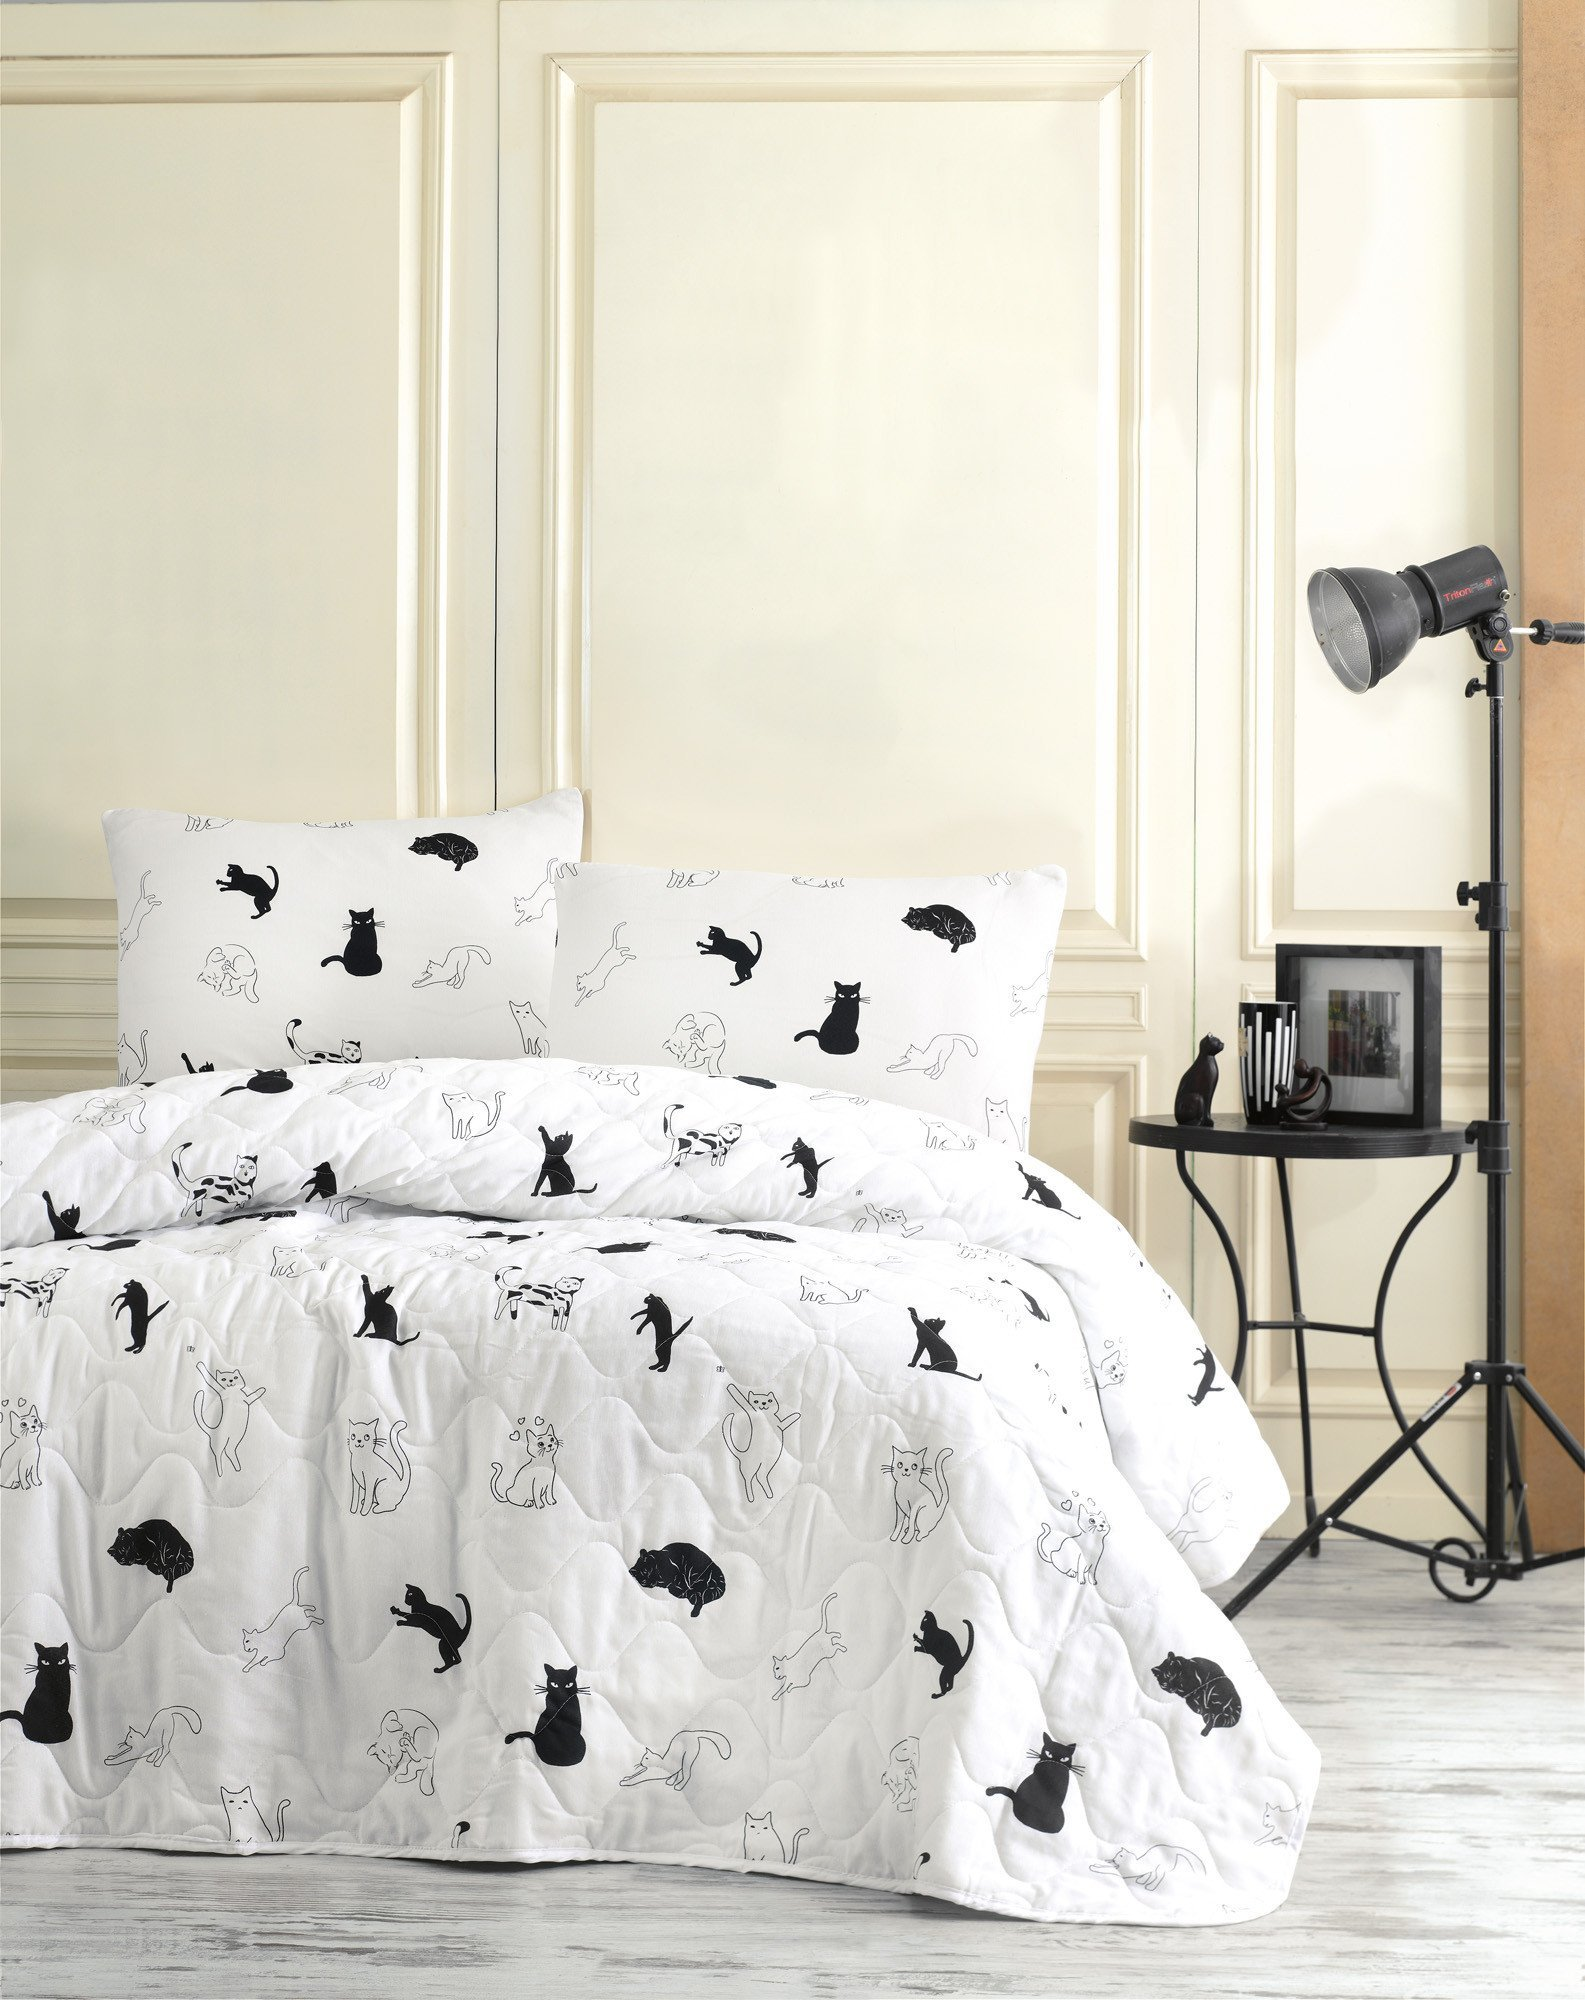 2 Pcs Twin and Single Bedroom Bedding Soft Colored [65% Cotton 35% Polyester (Cover)] / 100% FIBER (Filling) / Single Quilted Bedspread Set Soft Relaxed Design Comfortable Pattern Animal Cat Single Be